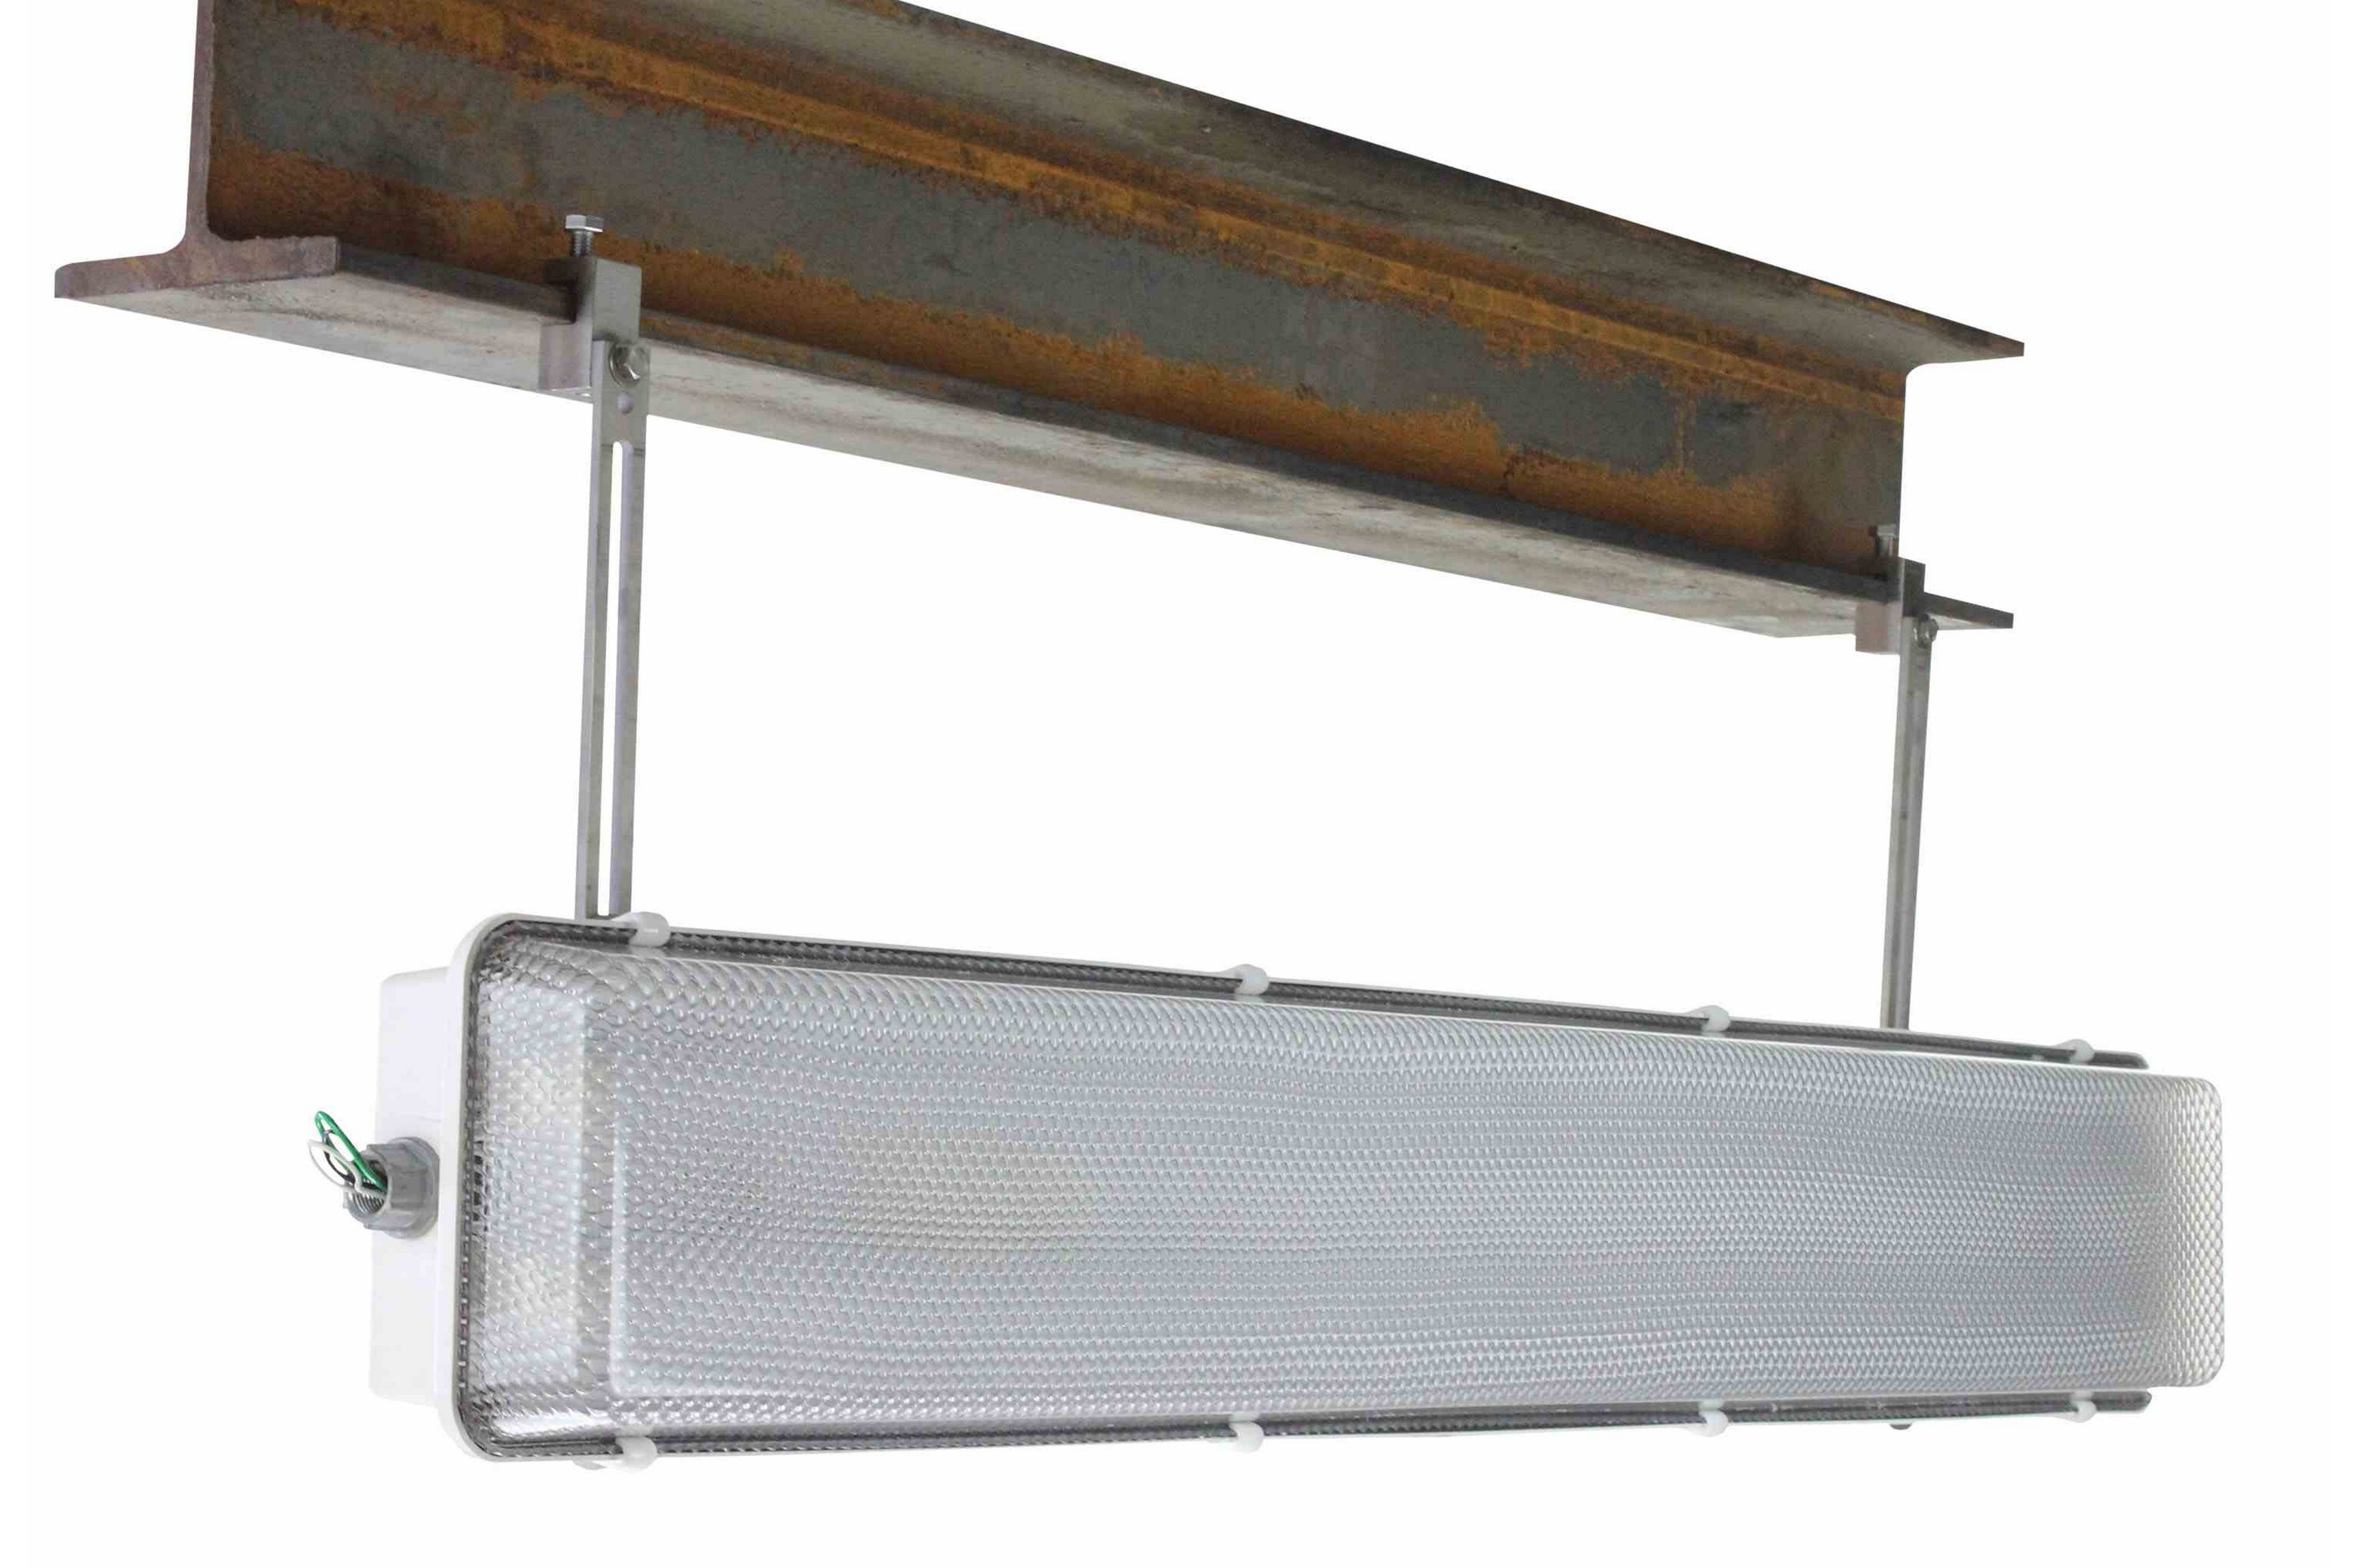 Marine grade light fixtures larson electronics class 1 division 2 hazardous location led light w stainless steel i beam mount corrosion resistant price 126300 arubaitofo Choice Image